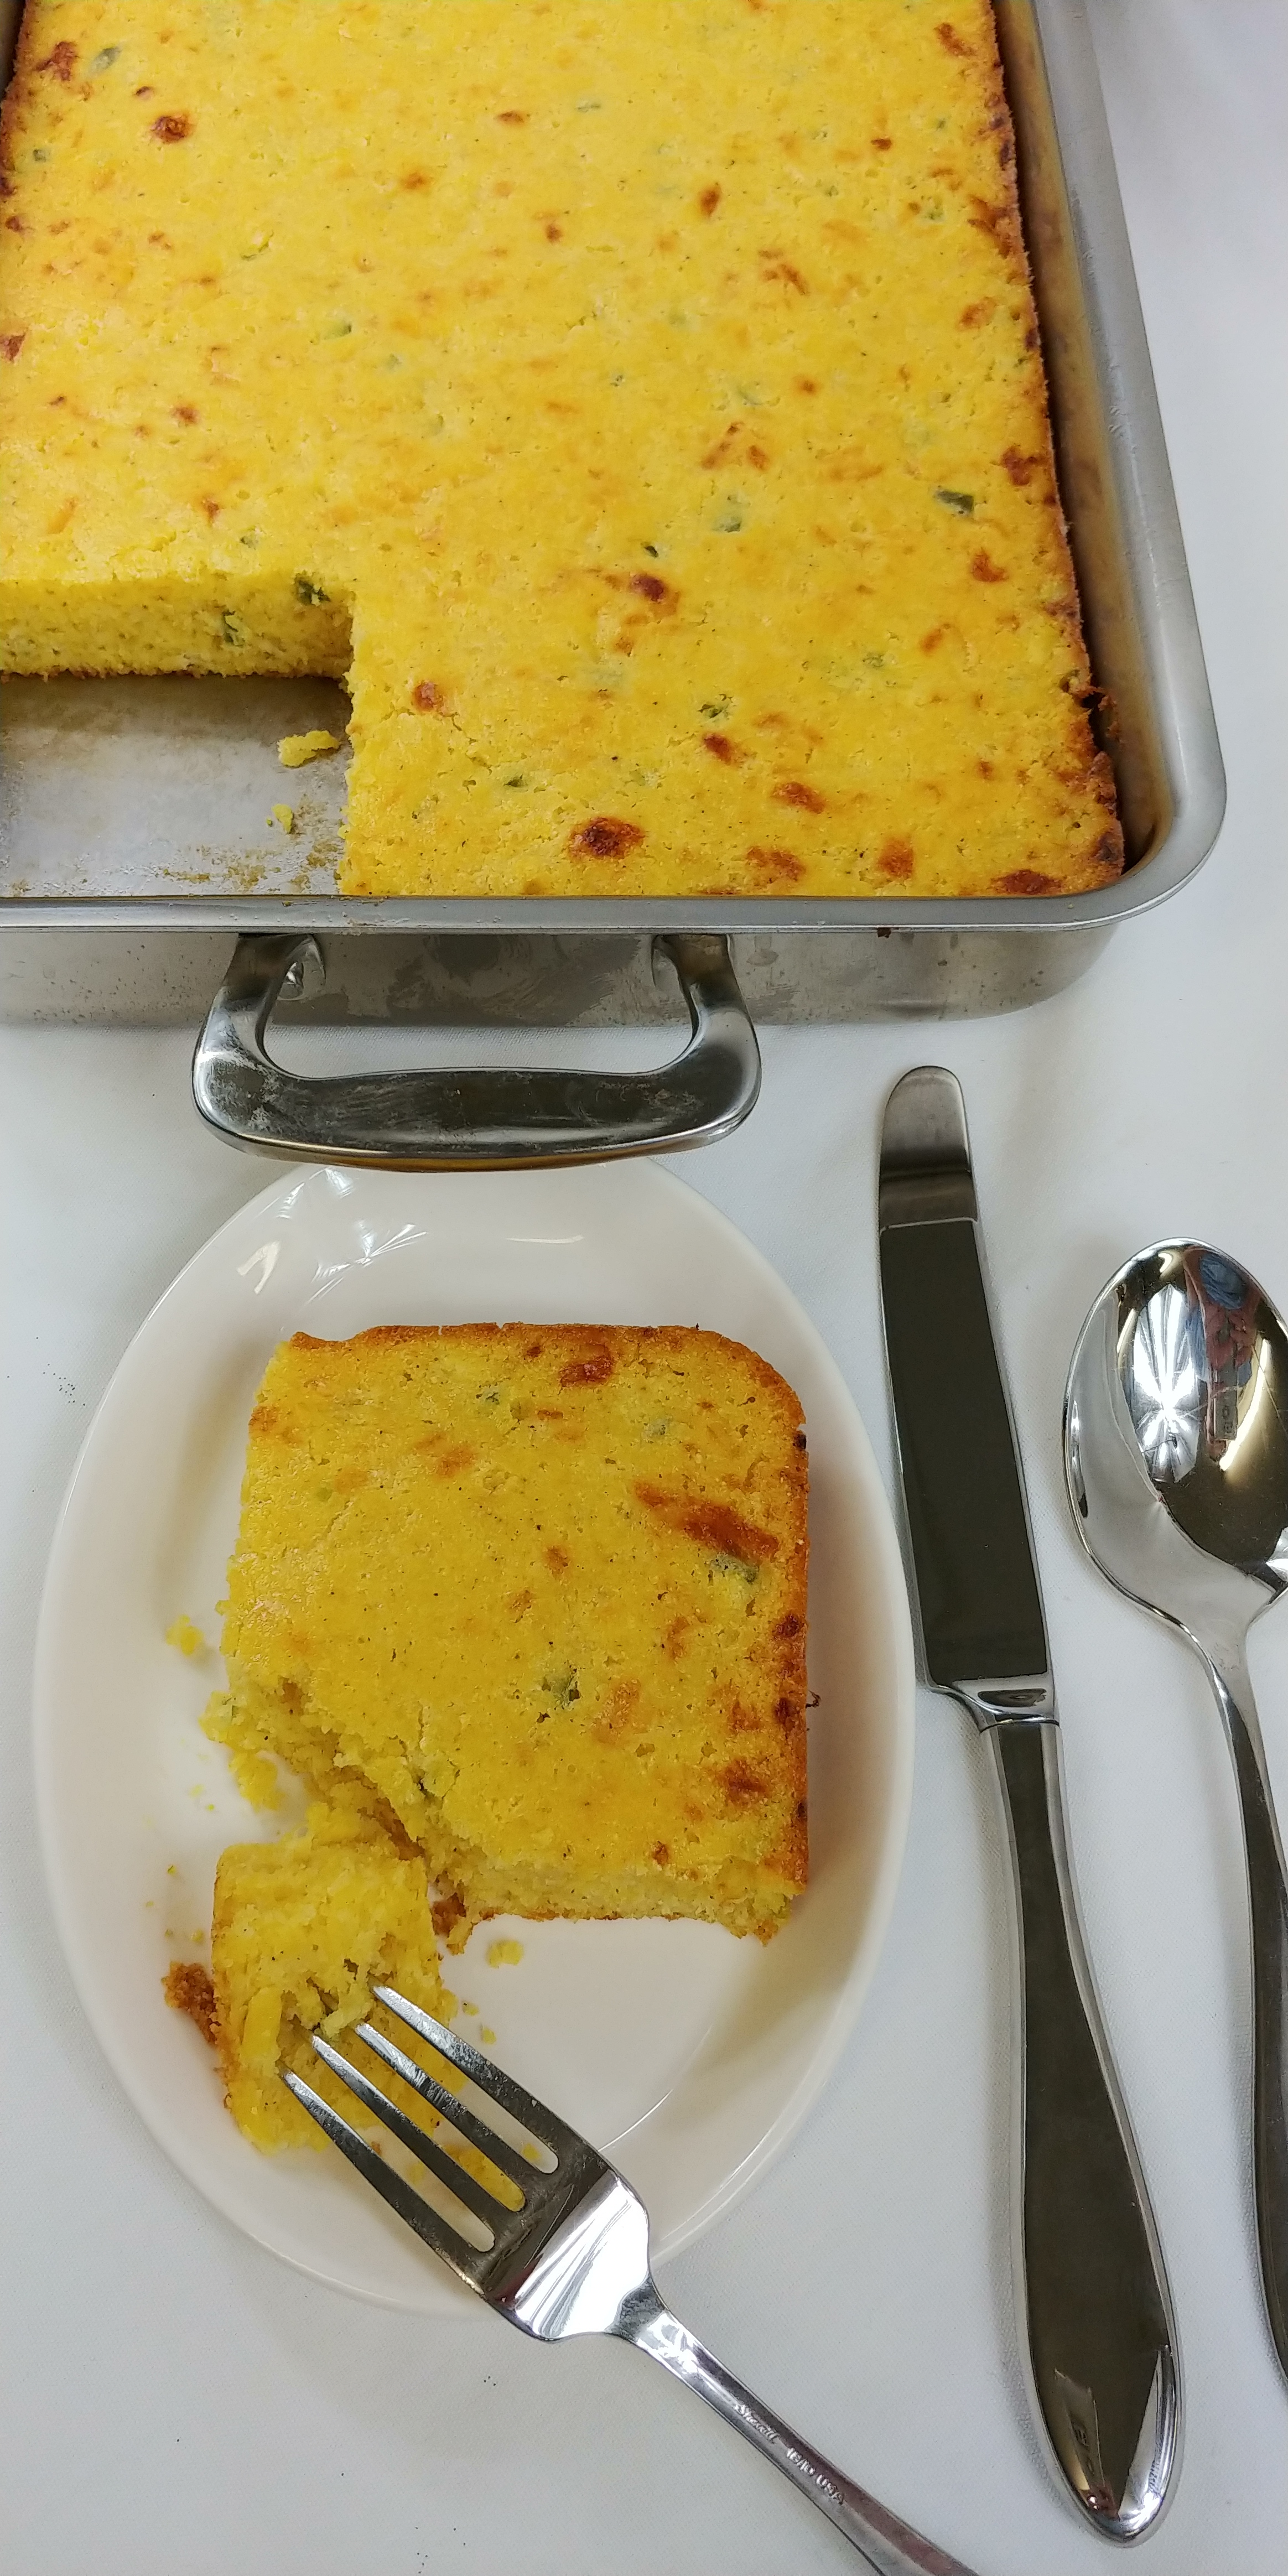 Liberty tabletop's Betsy Ross flatware pair beautifully with this cornbread